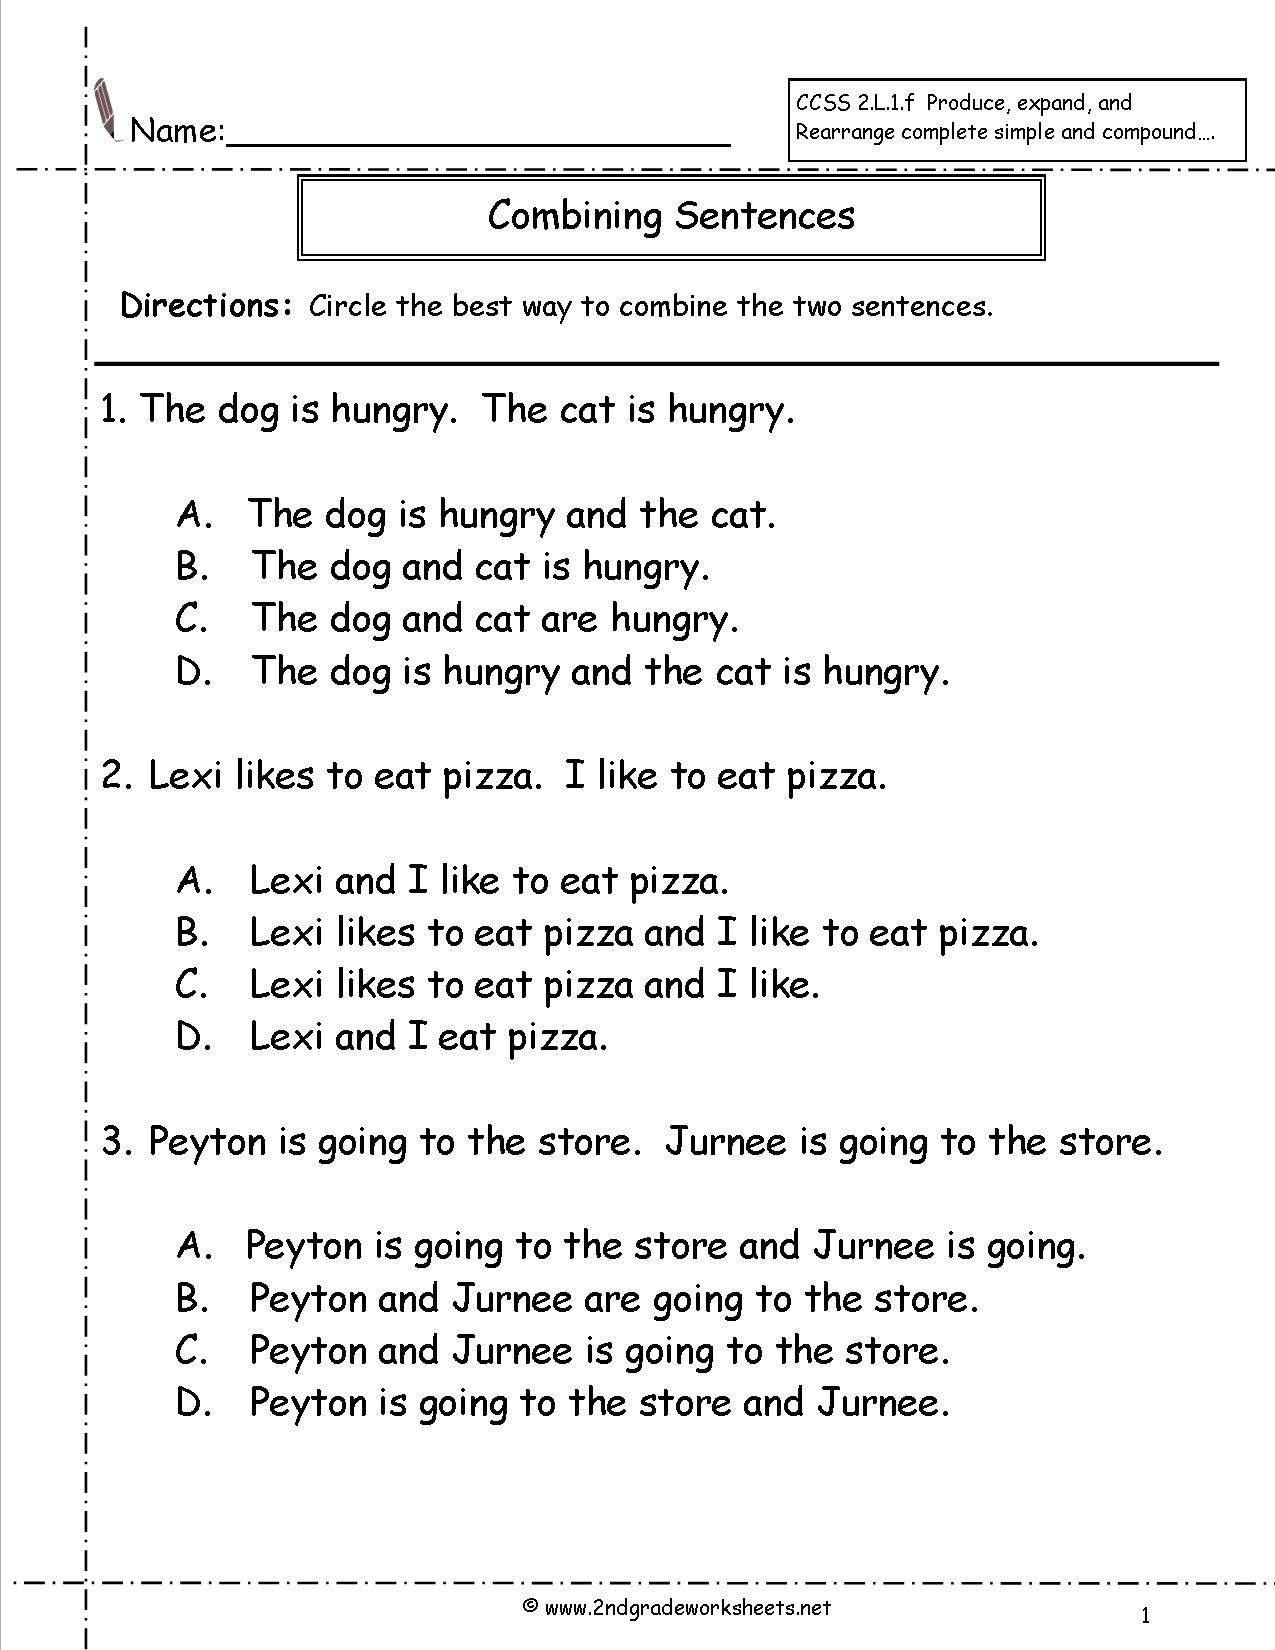 Worksheets Combining Sentences Worksheet combining sentences worksheet sentence helps pinterest worksheet